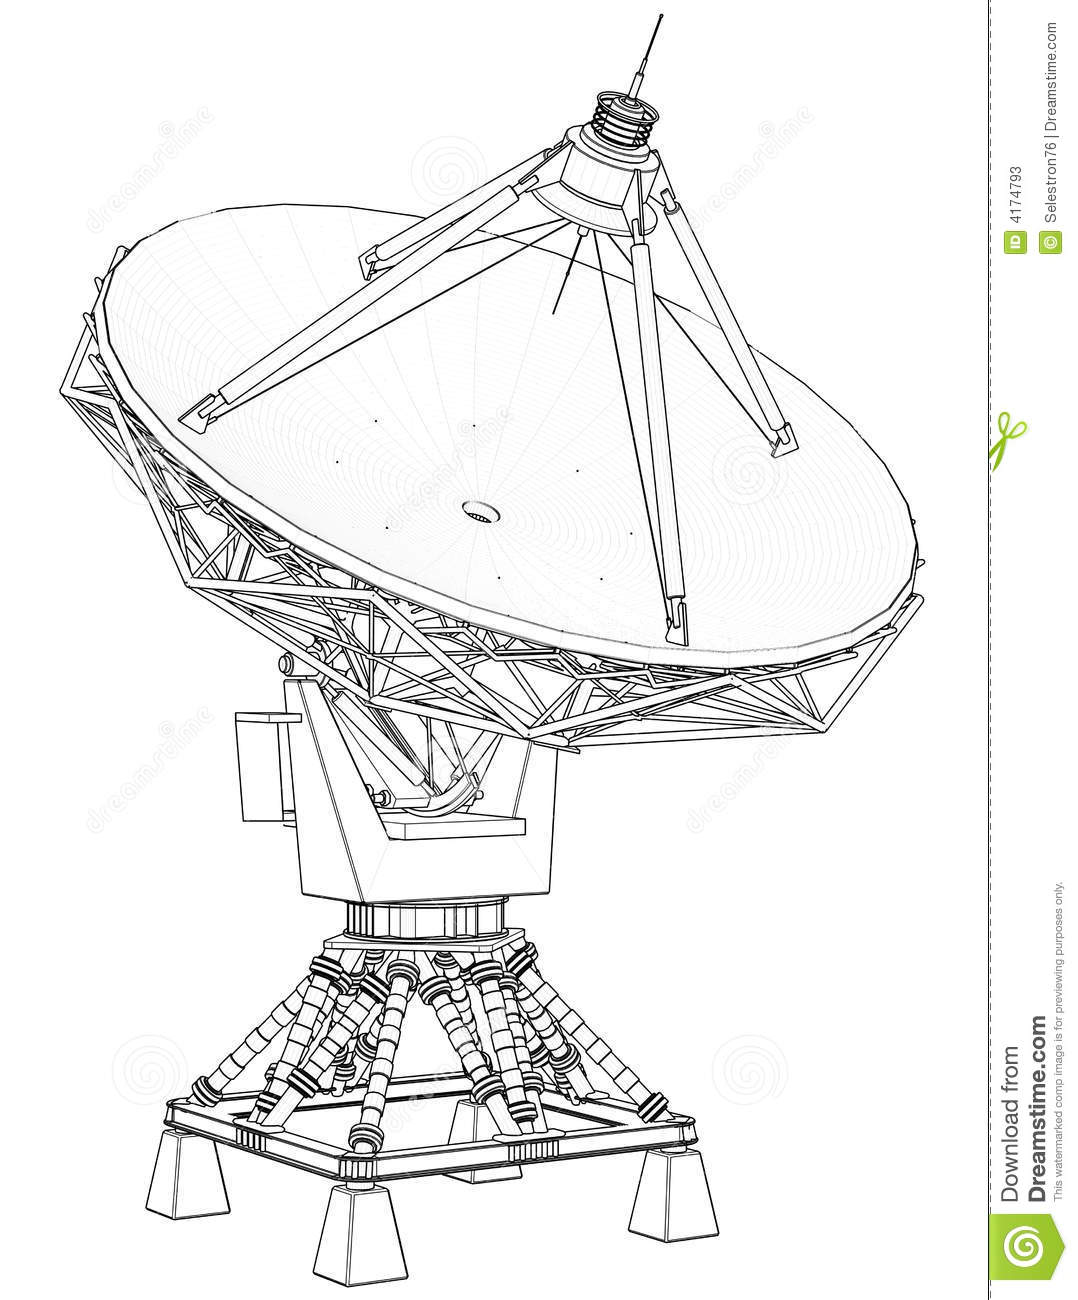 Doppler Radar Technical Draw Stock Photos